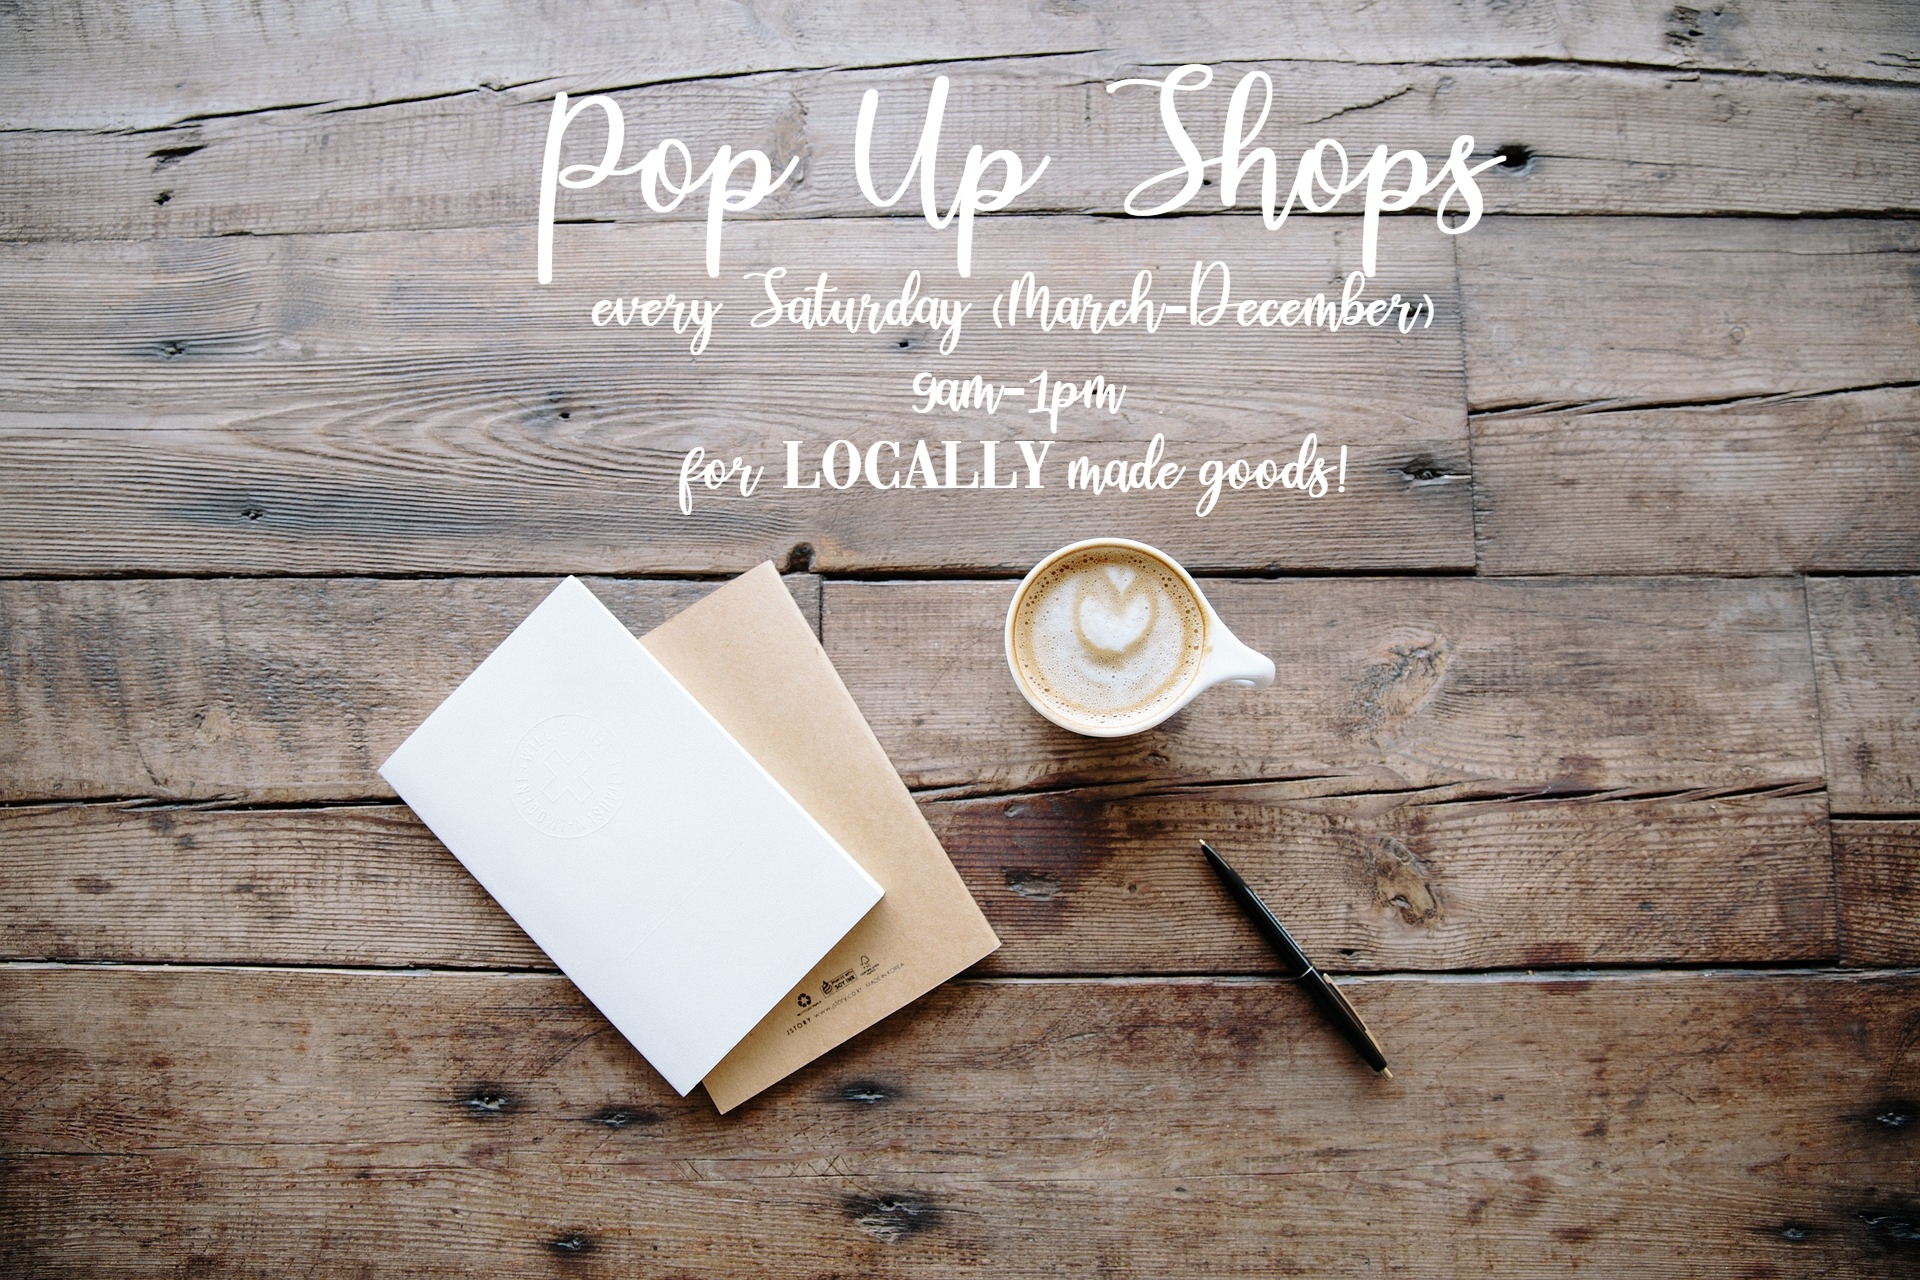 Pop Up Shops - Pop Ups Shops are held every Saturday from 9am-1pm from March - December. Want to showcase your goods? Fill out the information below to inquire.